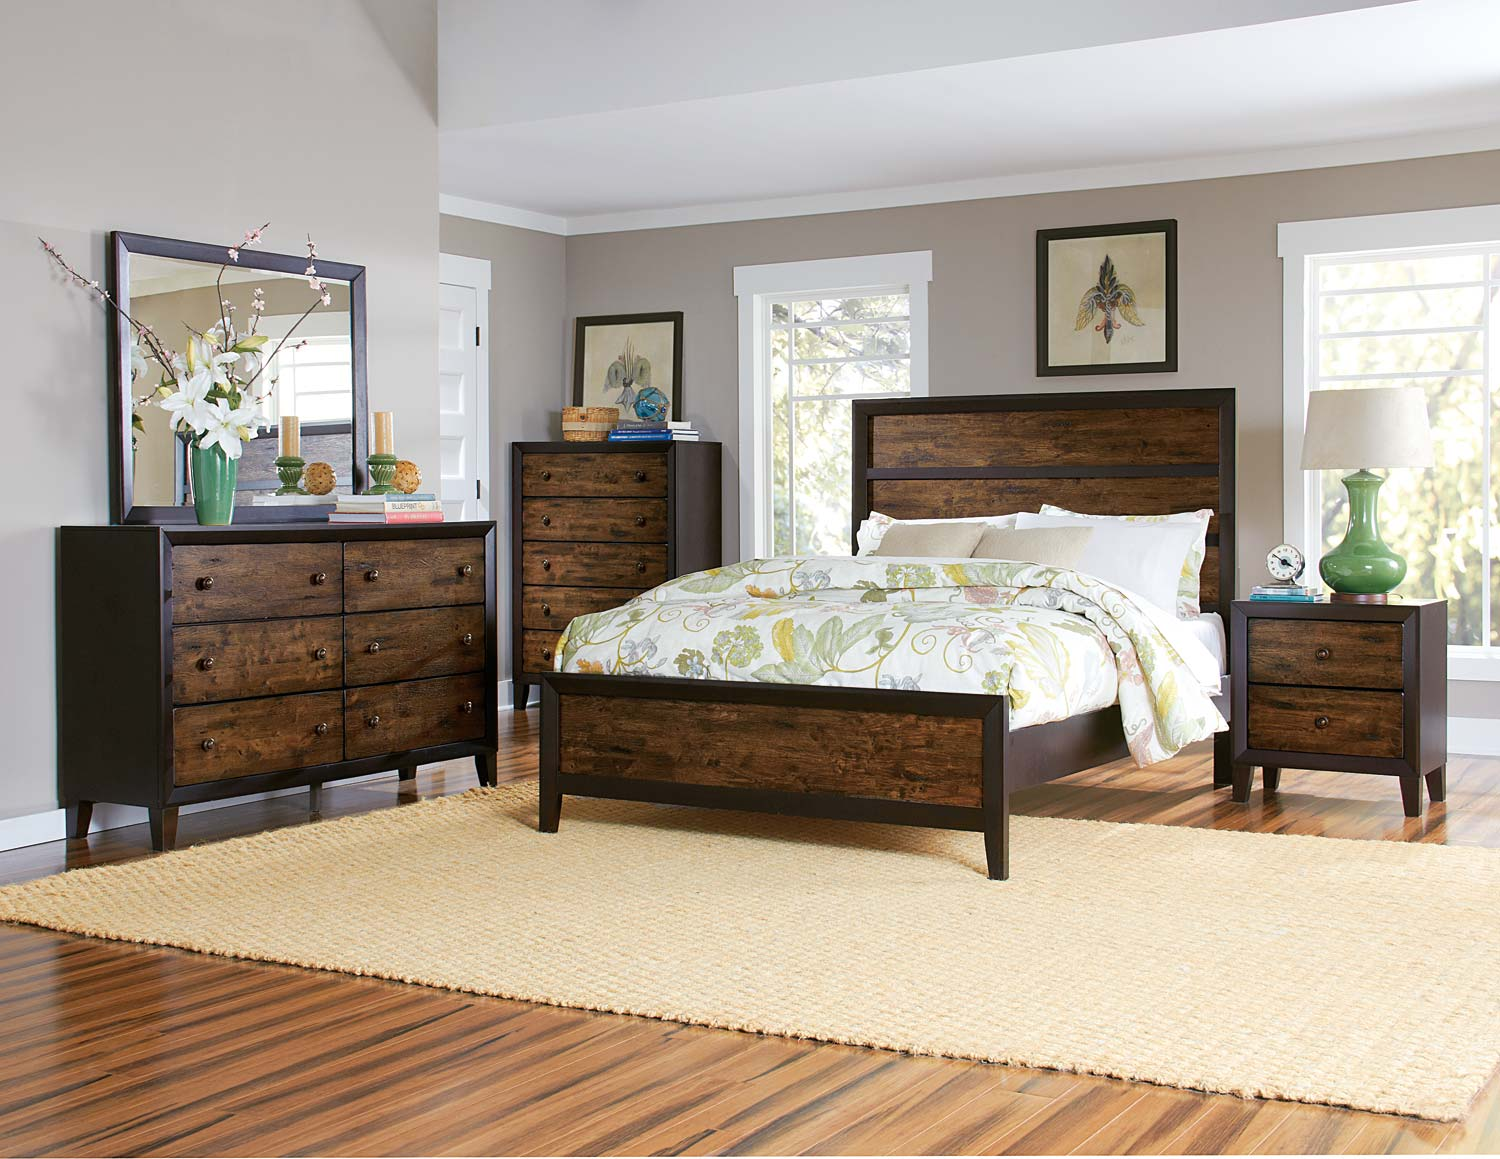 Homelegance Arcola Bedroom Set - Espresso/Drifted Oak